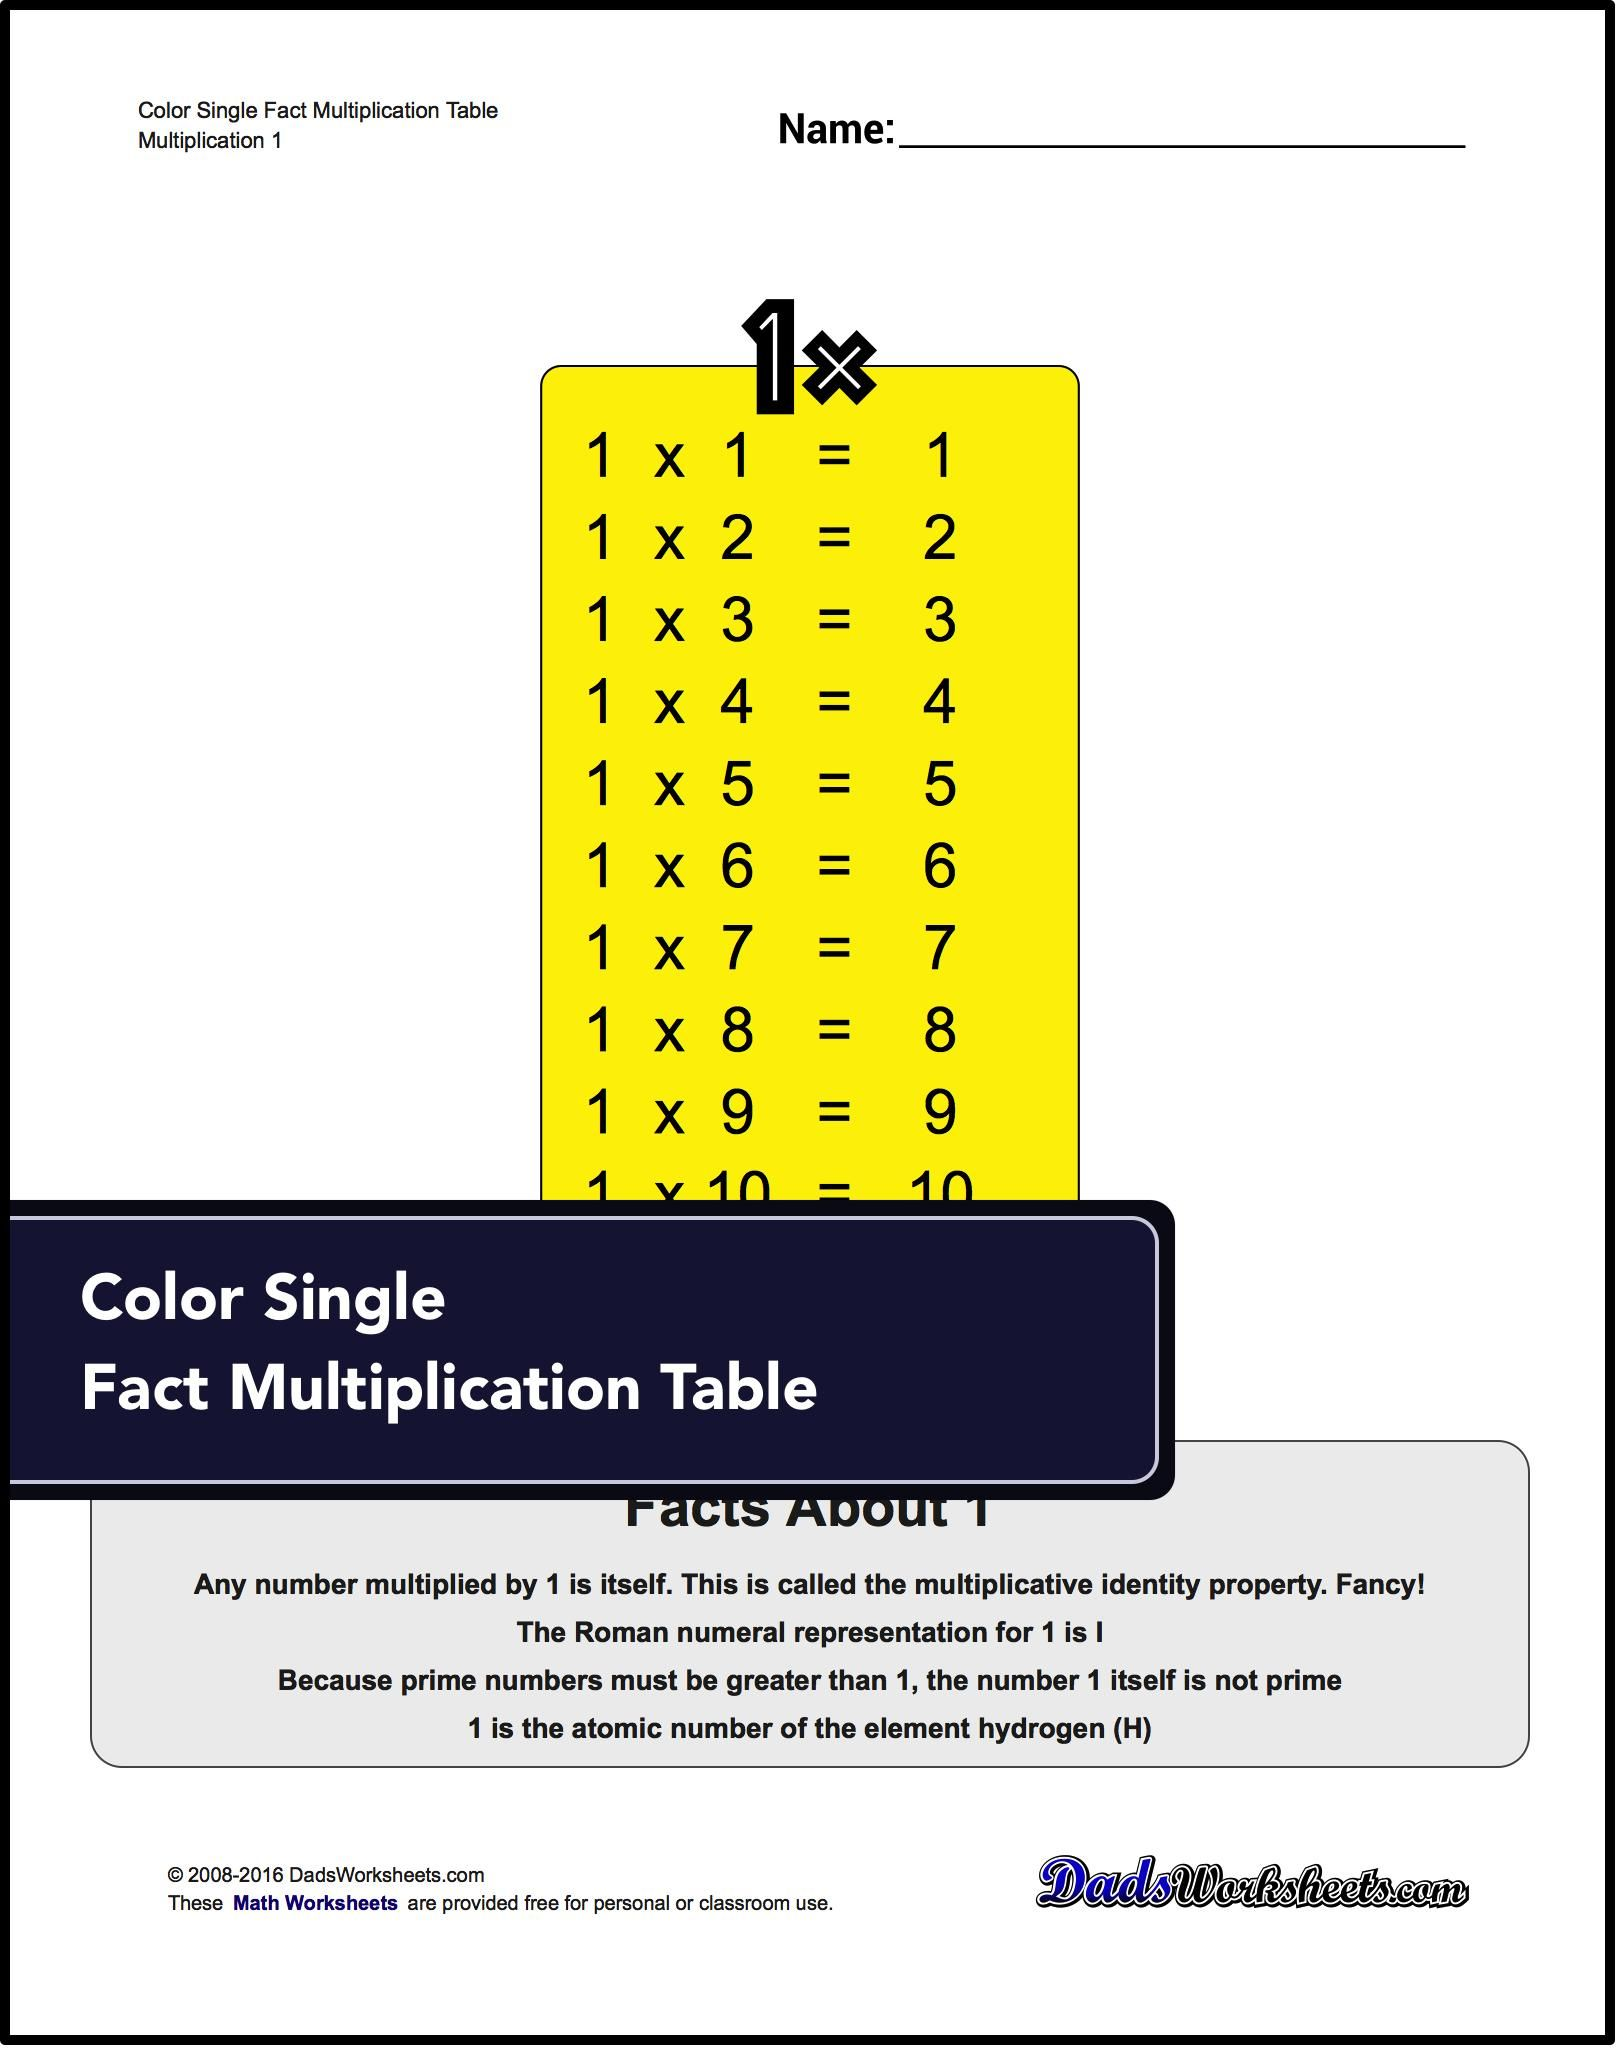 Thse Multiplication Table Printables Are Beautiful You Can Never Have Too Many Tools In Your